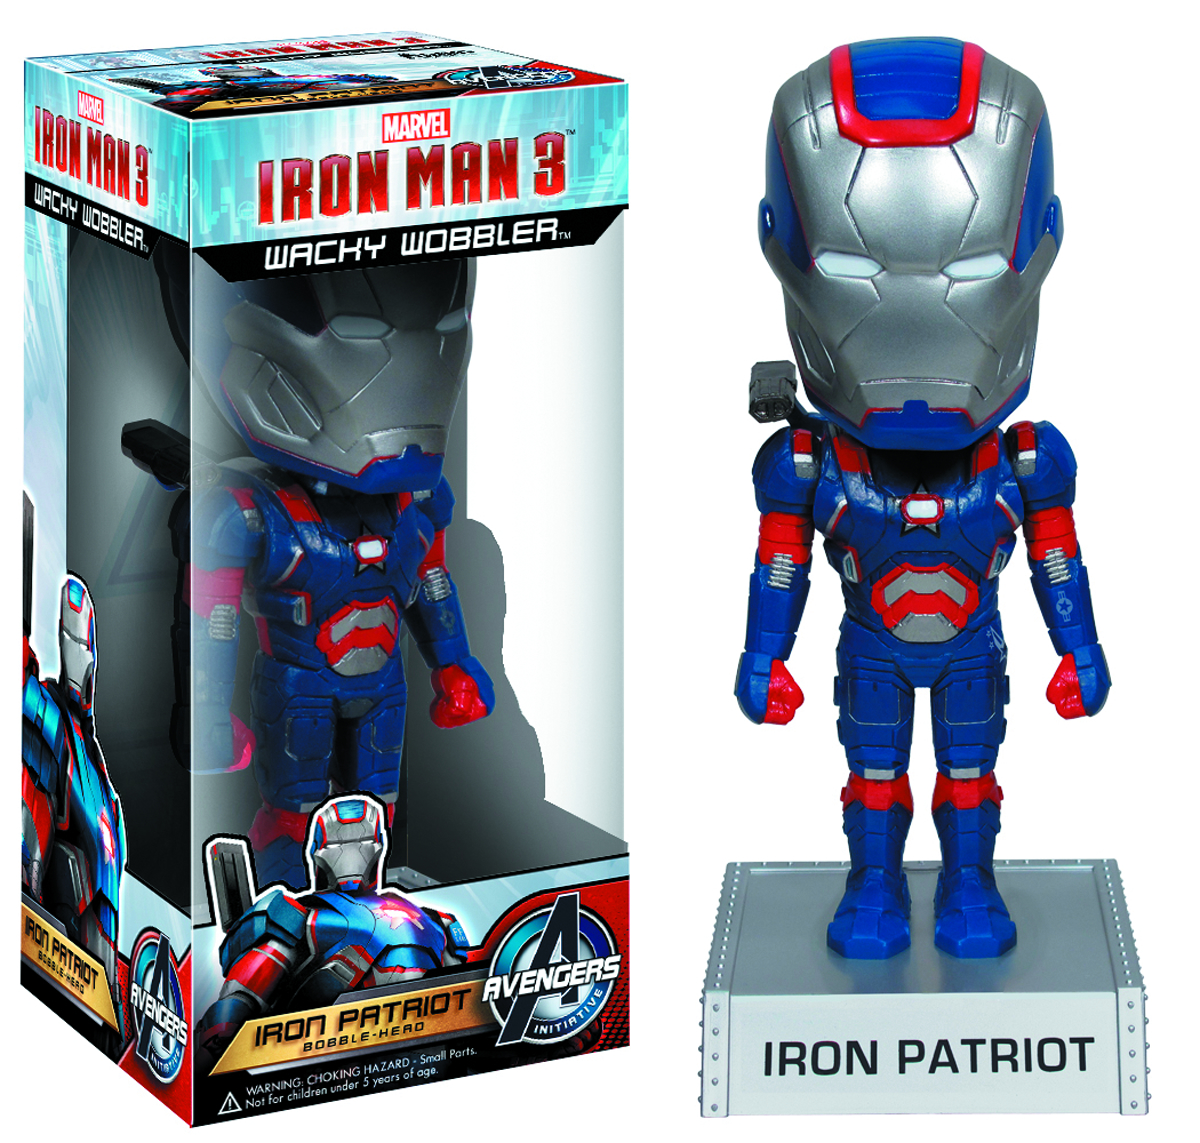 IRON MAN 3 IRON PATRIOT WACKY WOBBLER